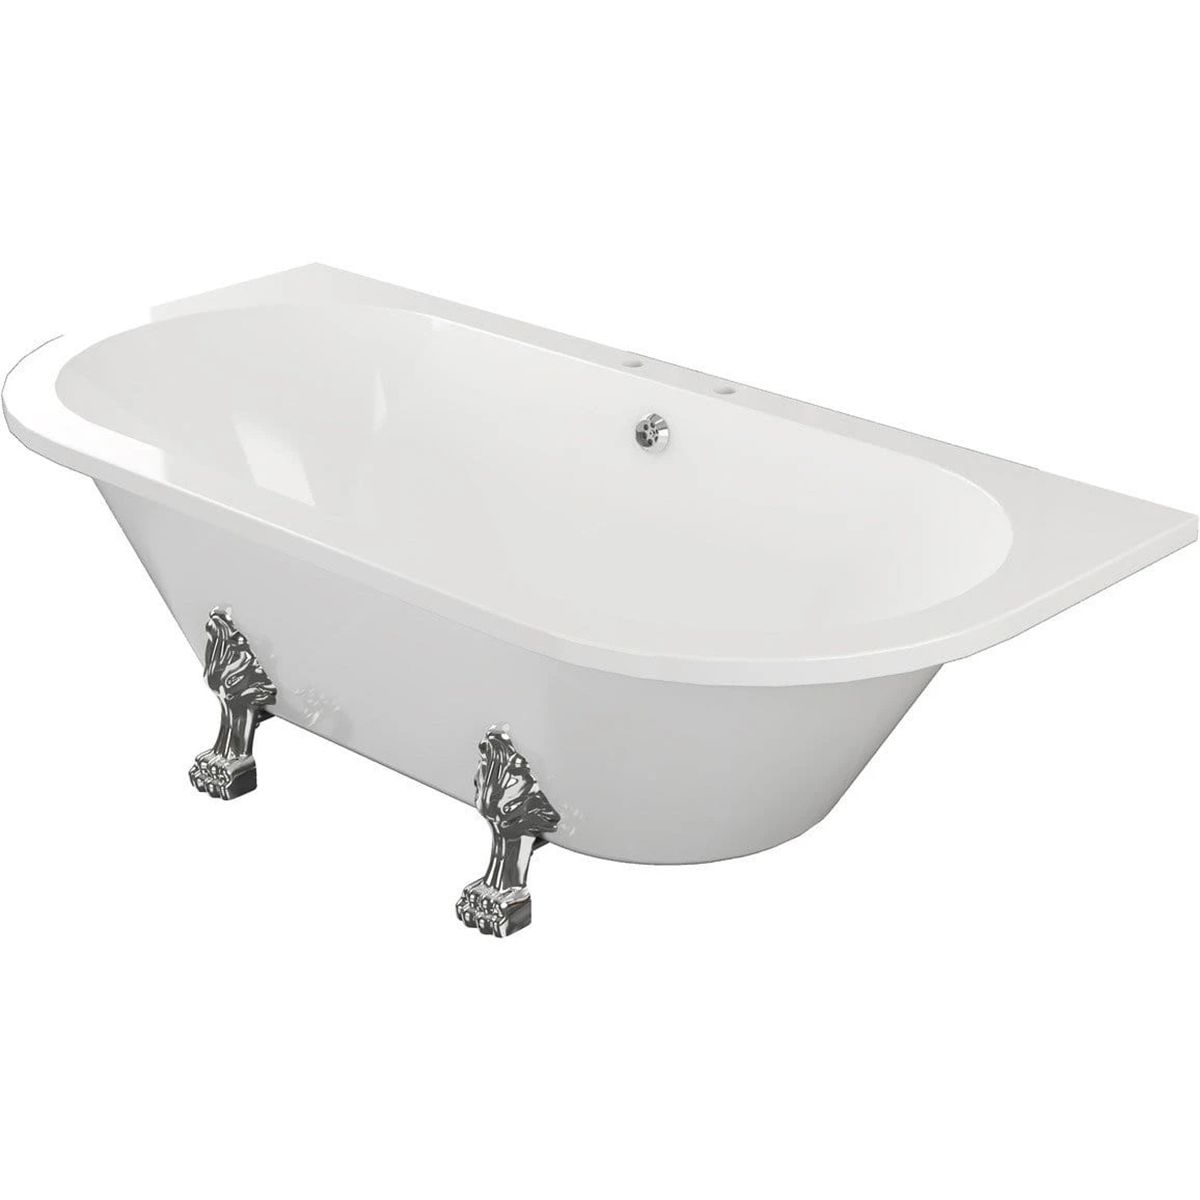 Bathrooms To Love Traditional Back To Wall Bath with Feet 1700mm x 800mm